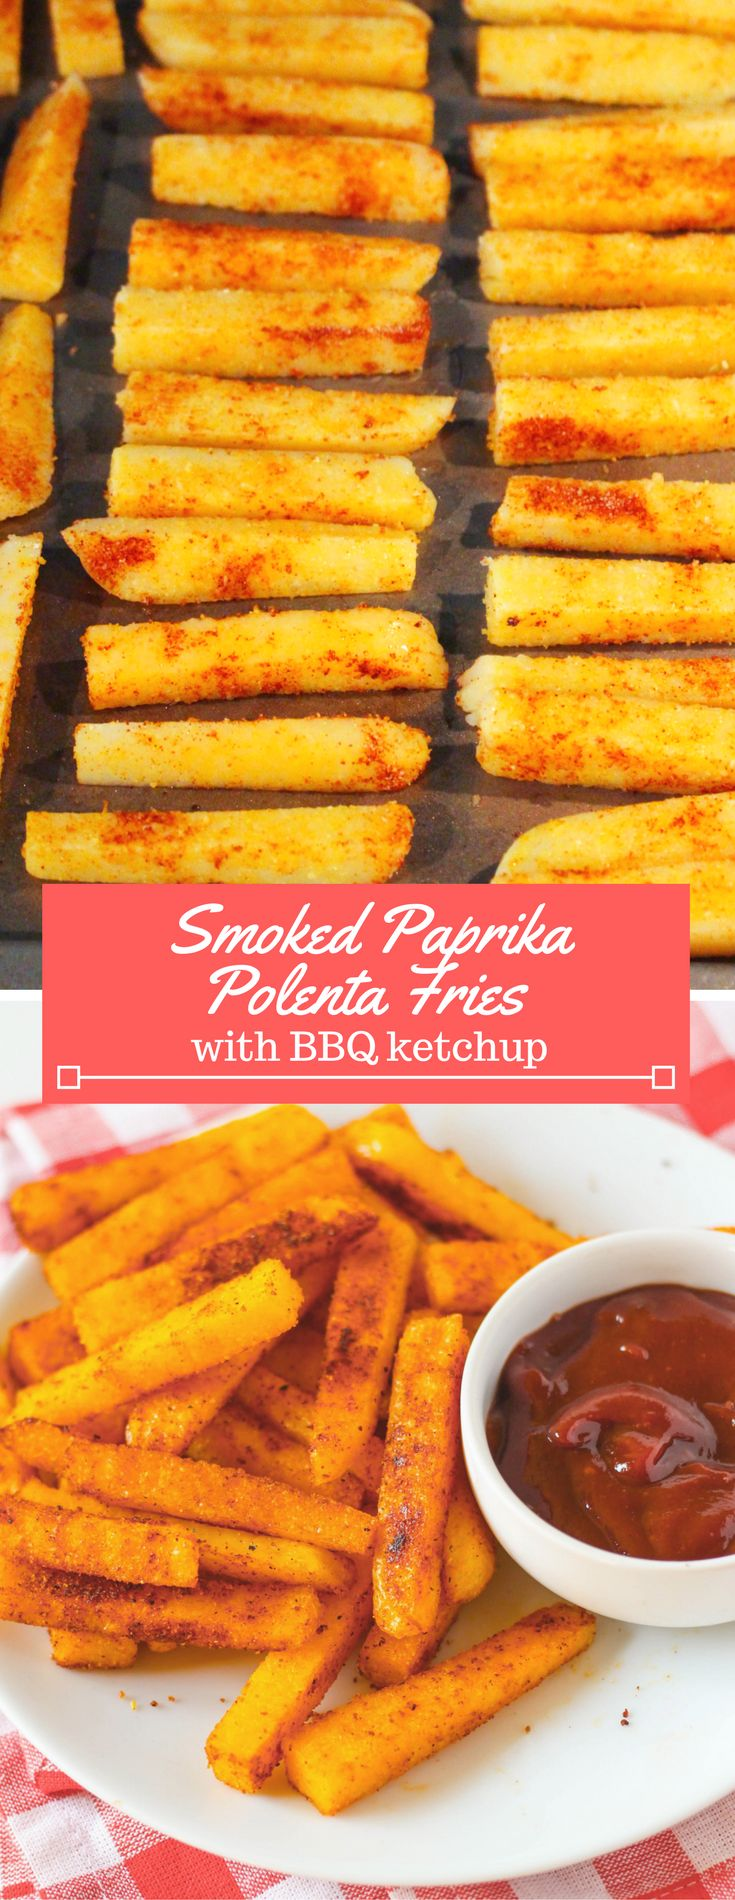 Slicing polenta into fry shapes is easy and they taste great toasted in the oven! Season with smoked paprika for an awesome, smoky flavor. Mix a BBQ ketchup to go with!